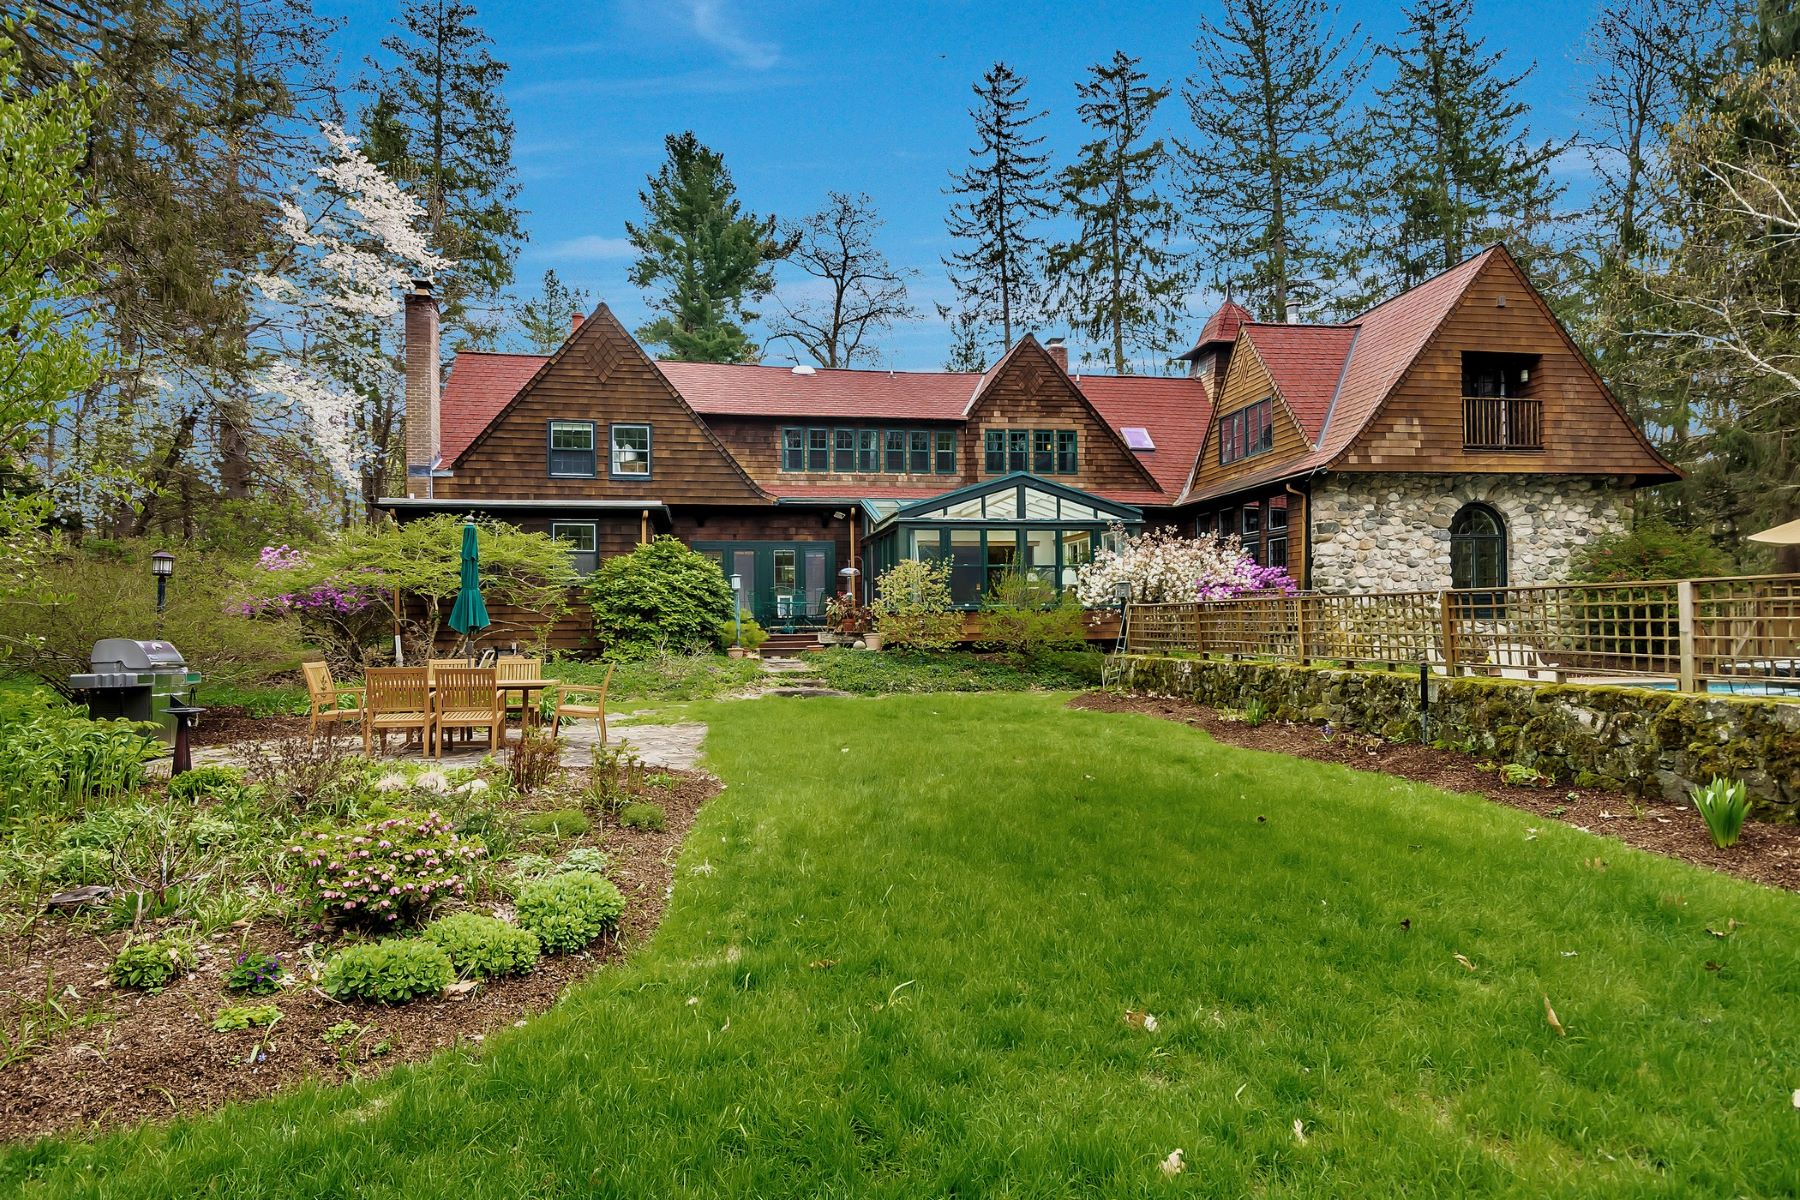 Single Family Homes for Sale at 38 Old Winter Street Lincoln, Massachusetts 01773 United States